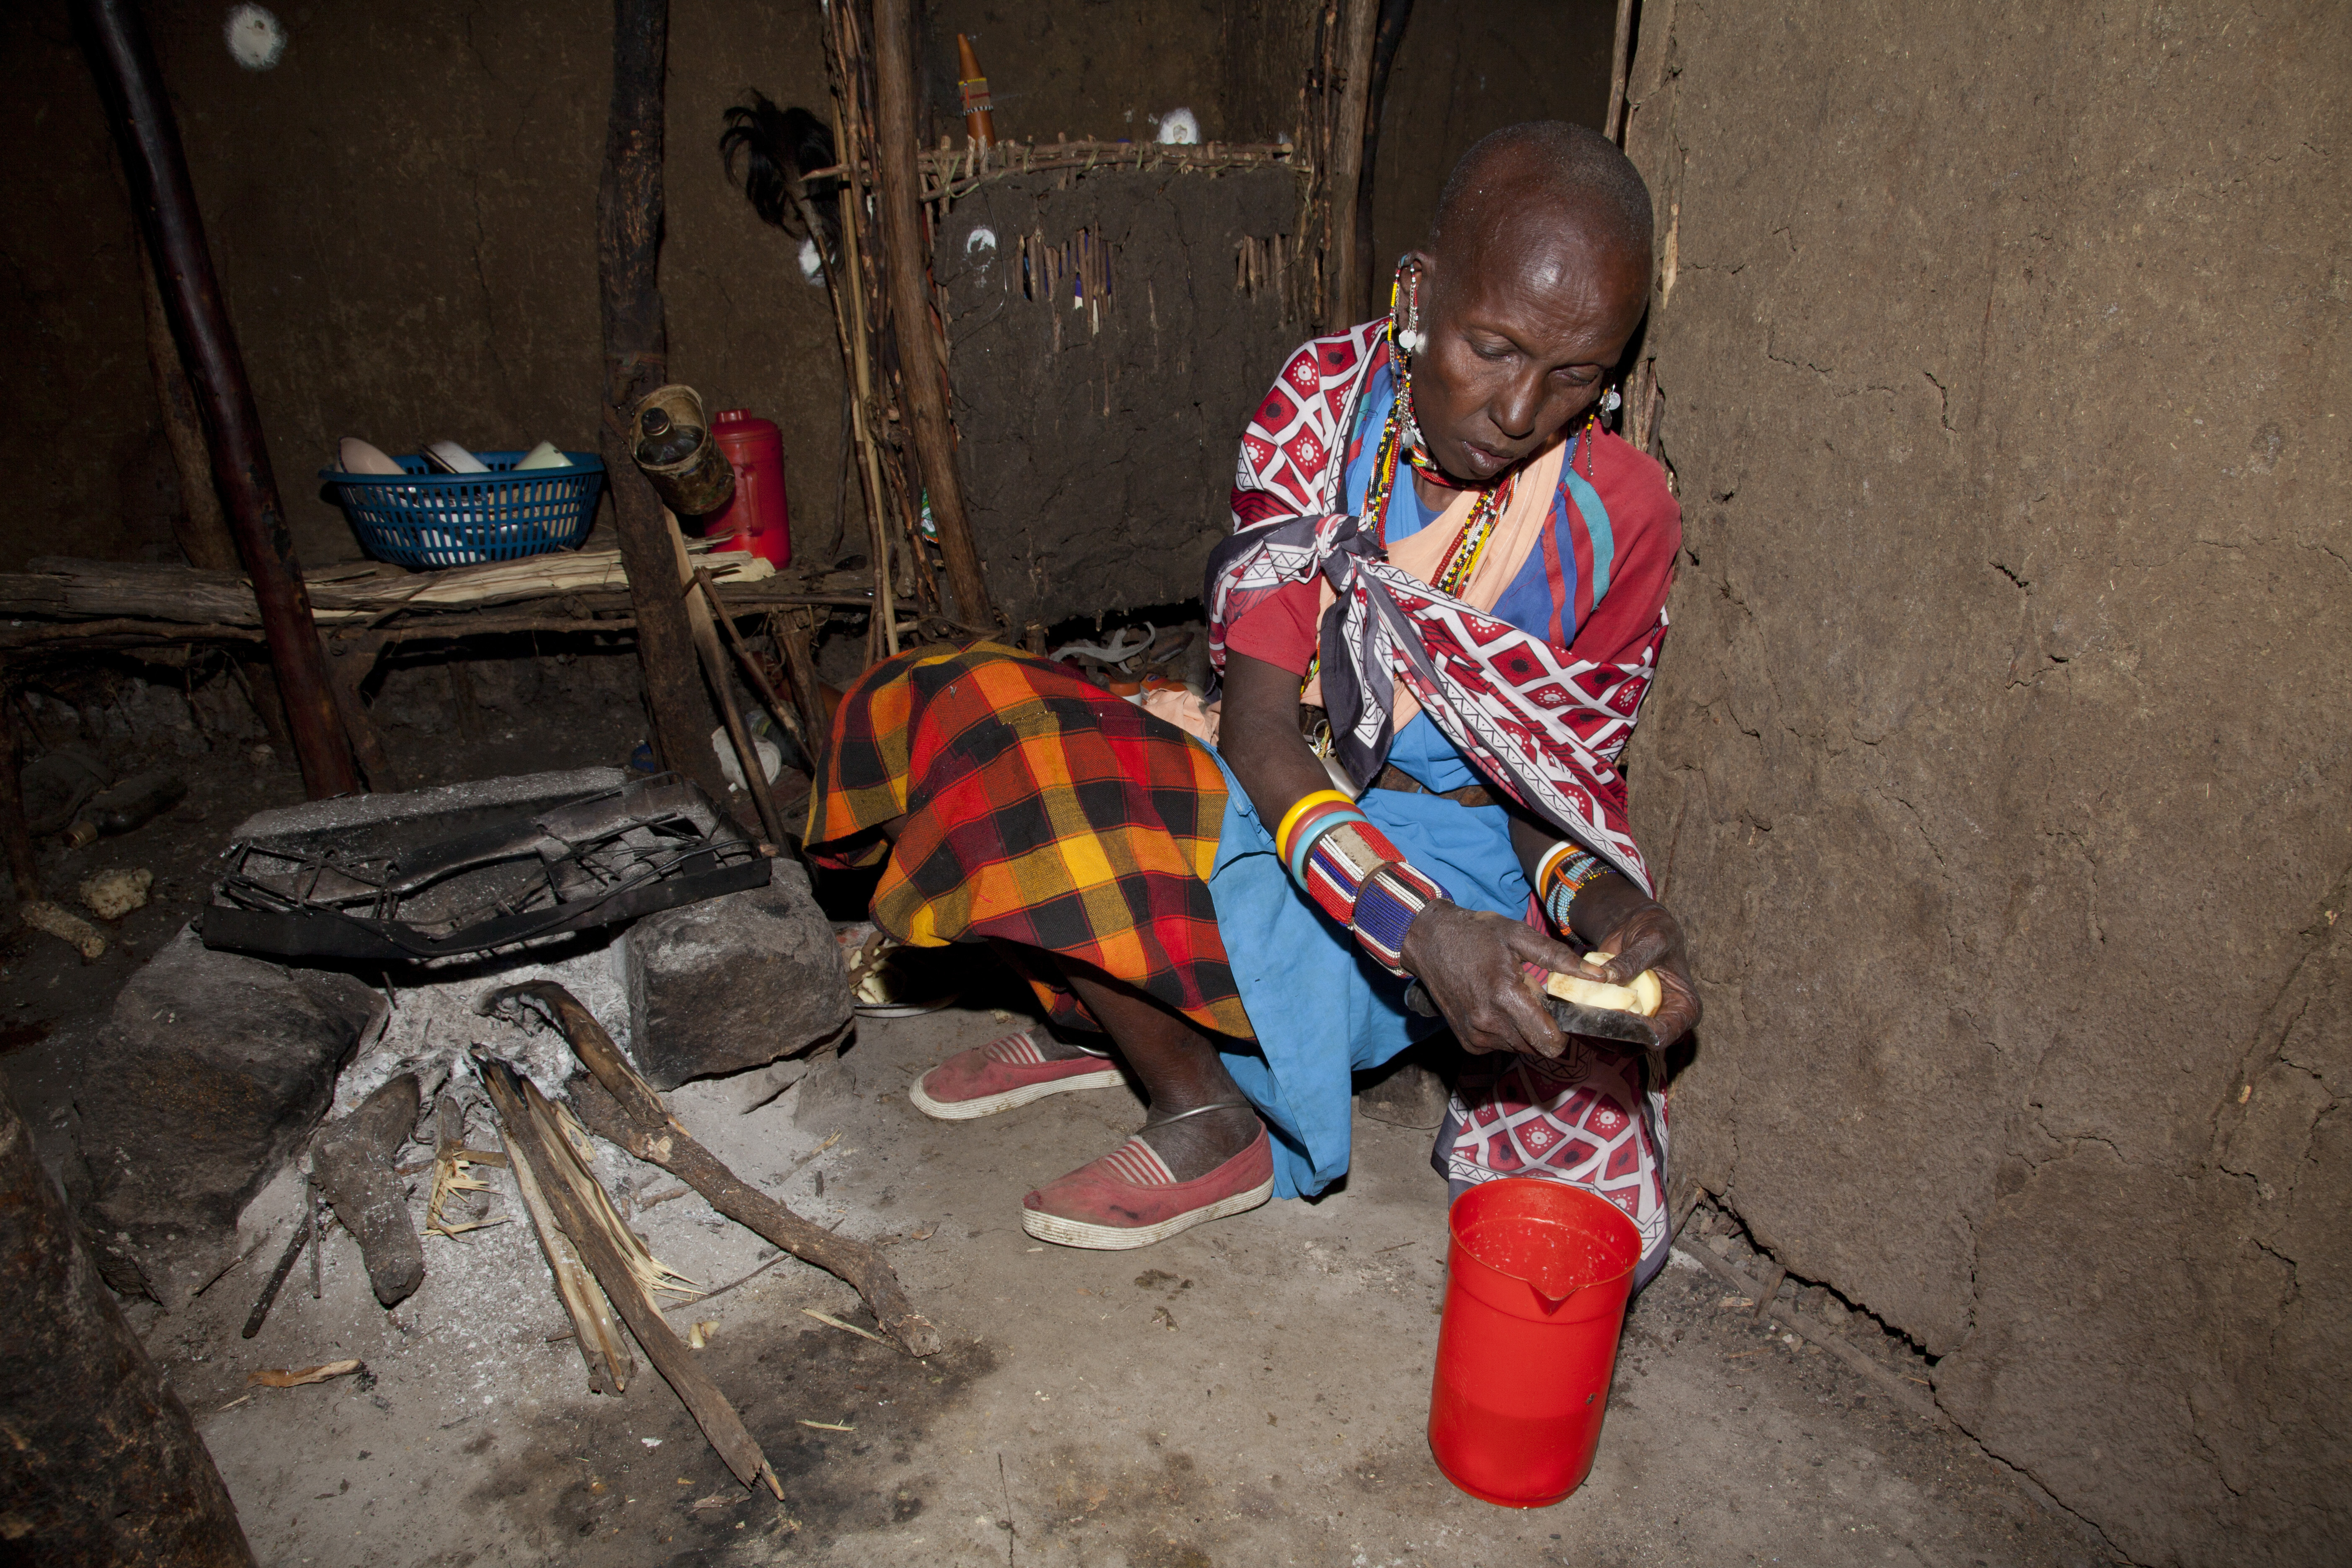 Masai wife of elder chief cooking in her hut in the village of Oliolomutia, next to the Masai Mara Nature Reserve, Kenya    (Photo by Julio Etchart/ullstein bild via Getty Images)